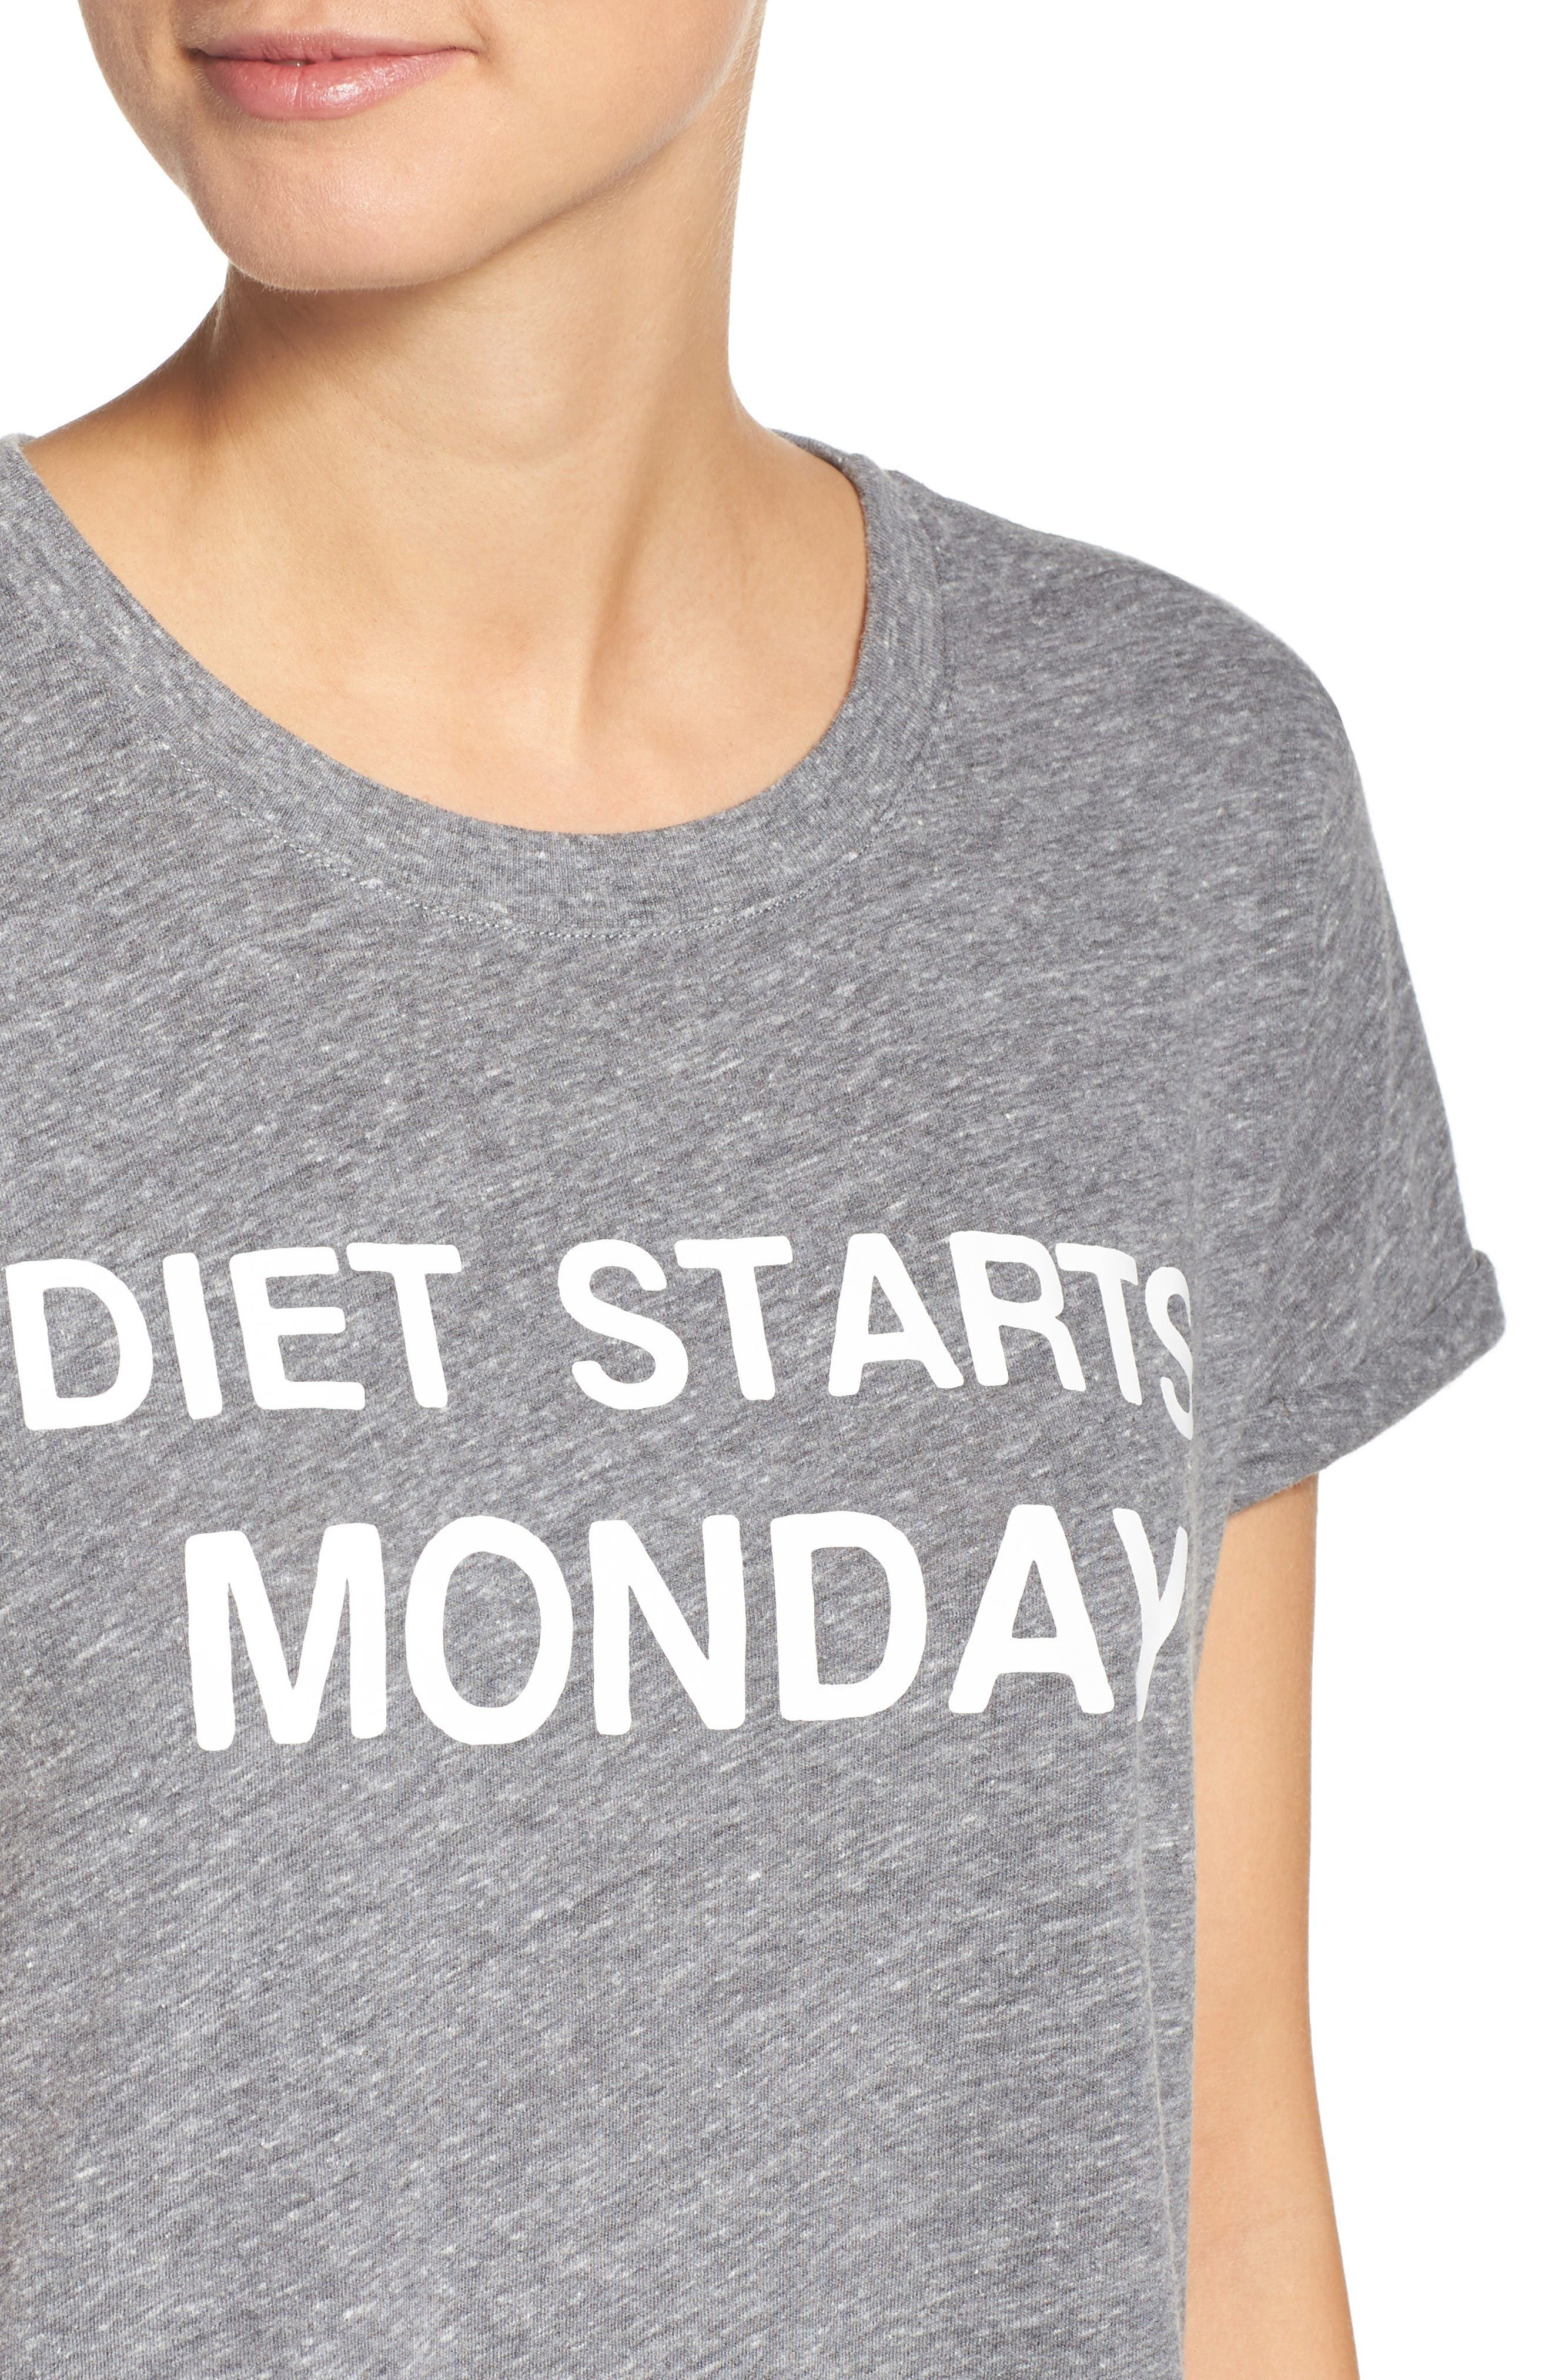 Diet Starts Monday Tee,                             Alternate thumbnail 4, color,                             Grey